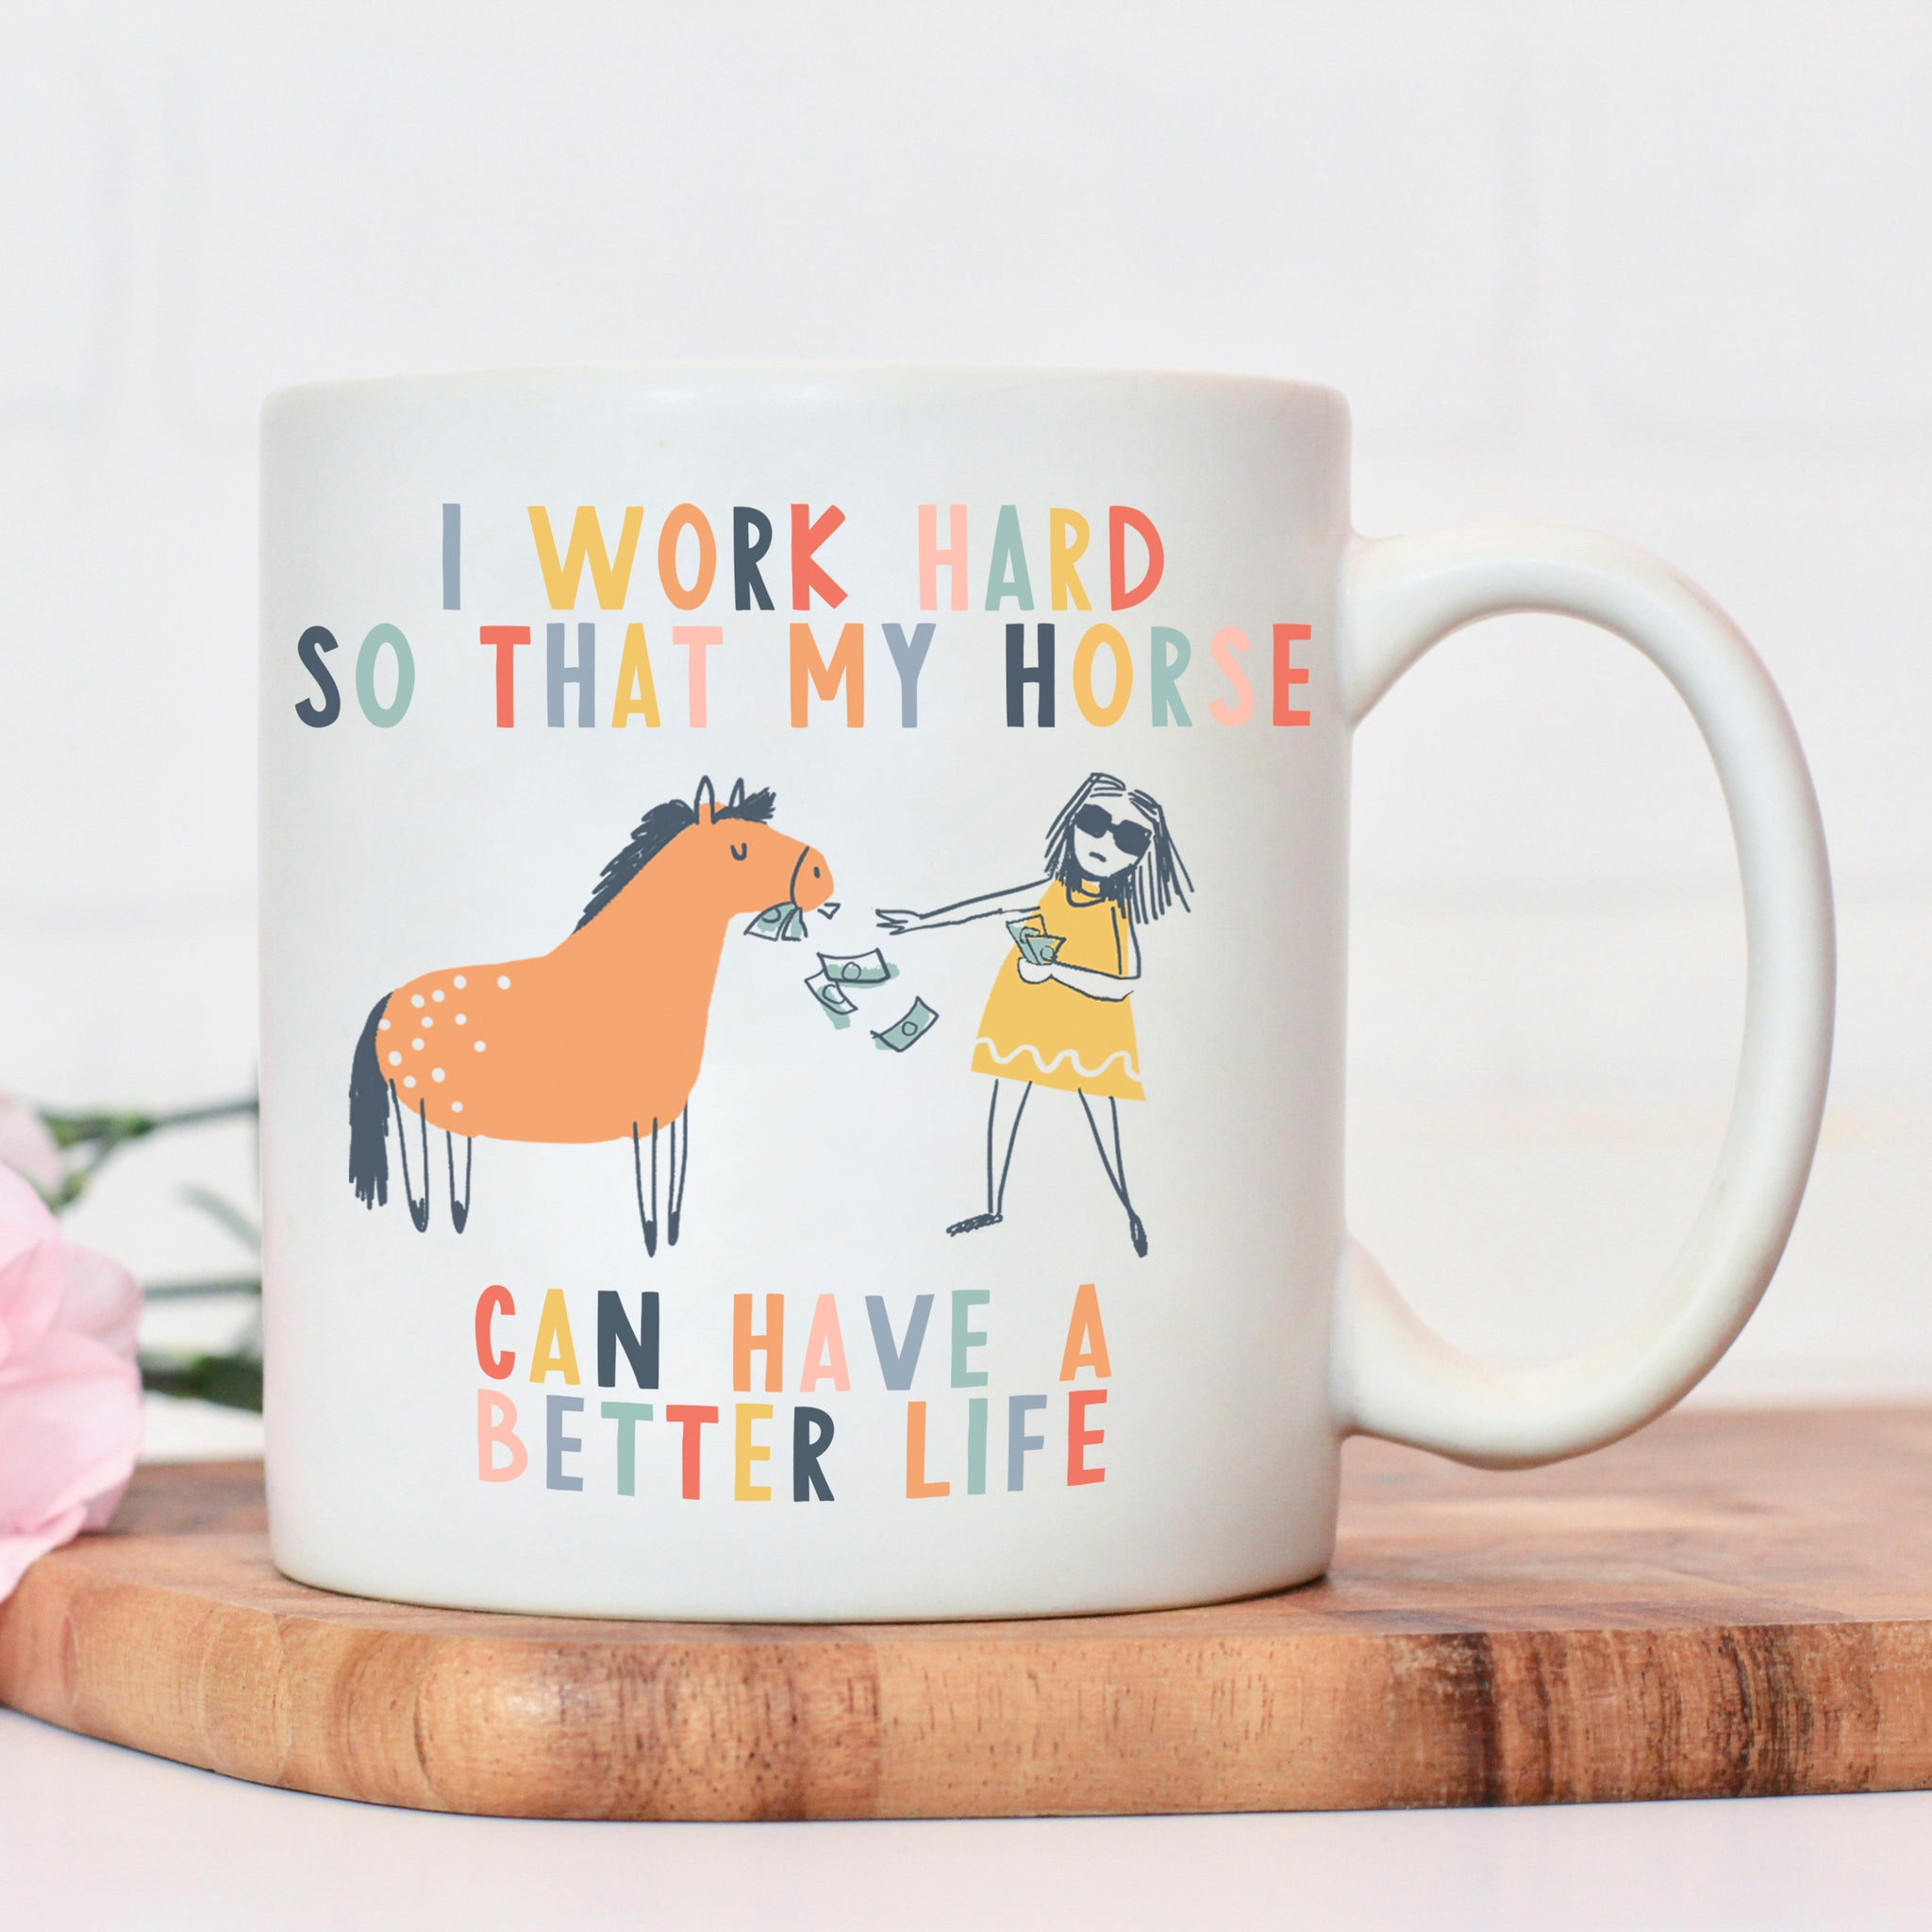 I work hard so my horse can have a better life Mug